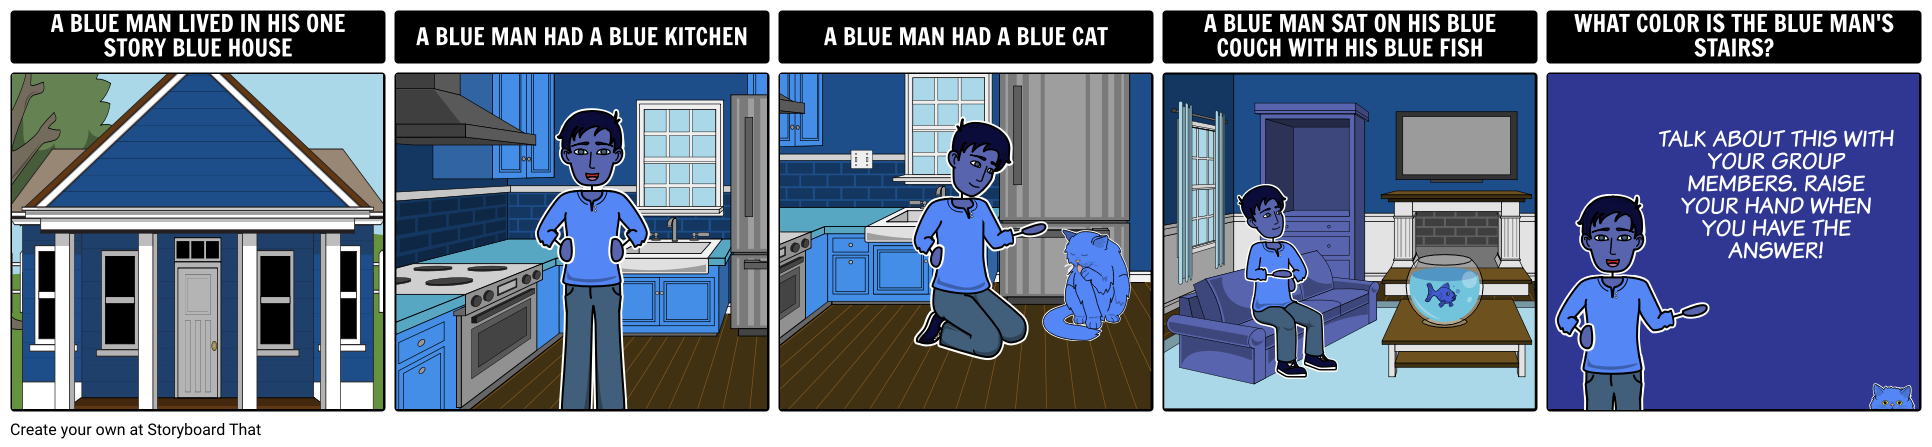 Blue Man Riddle